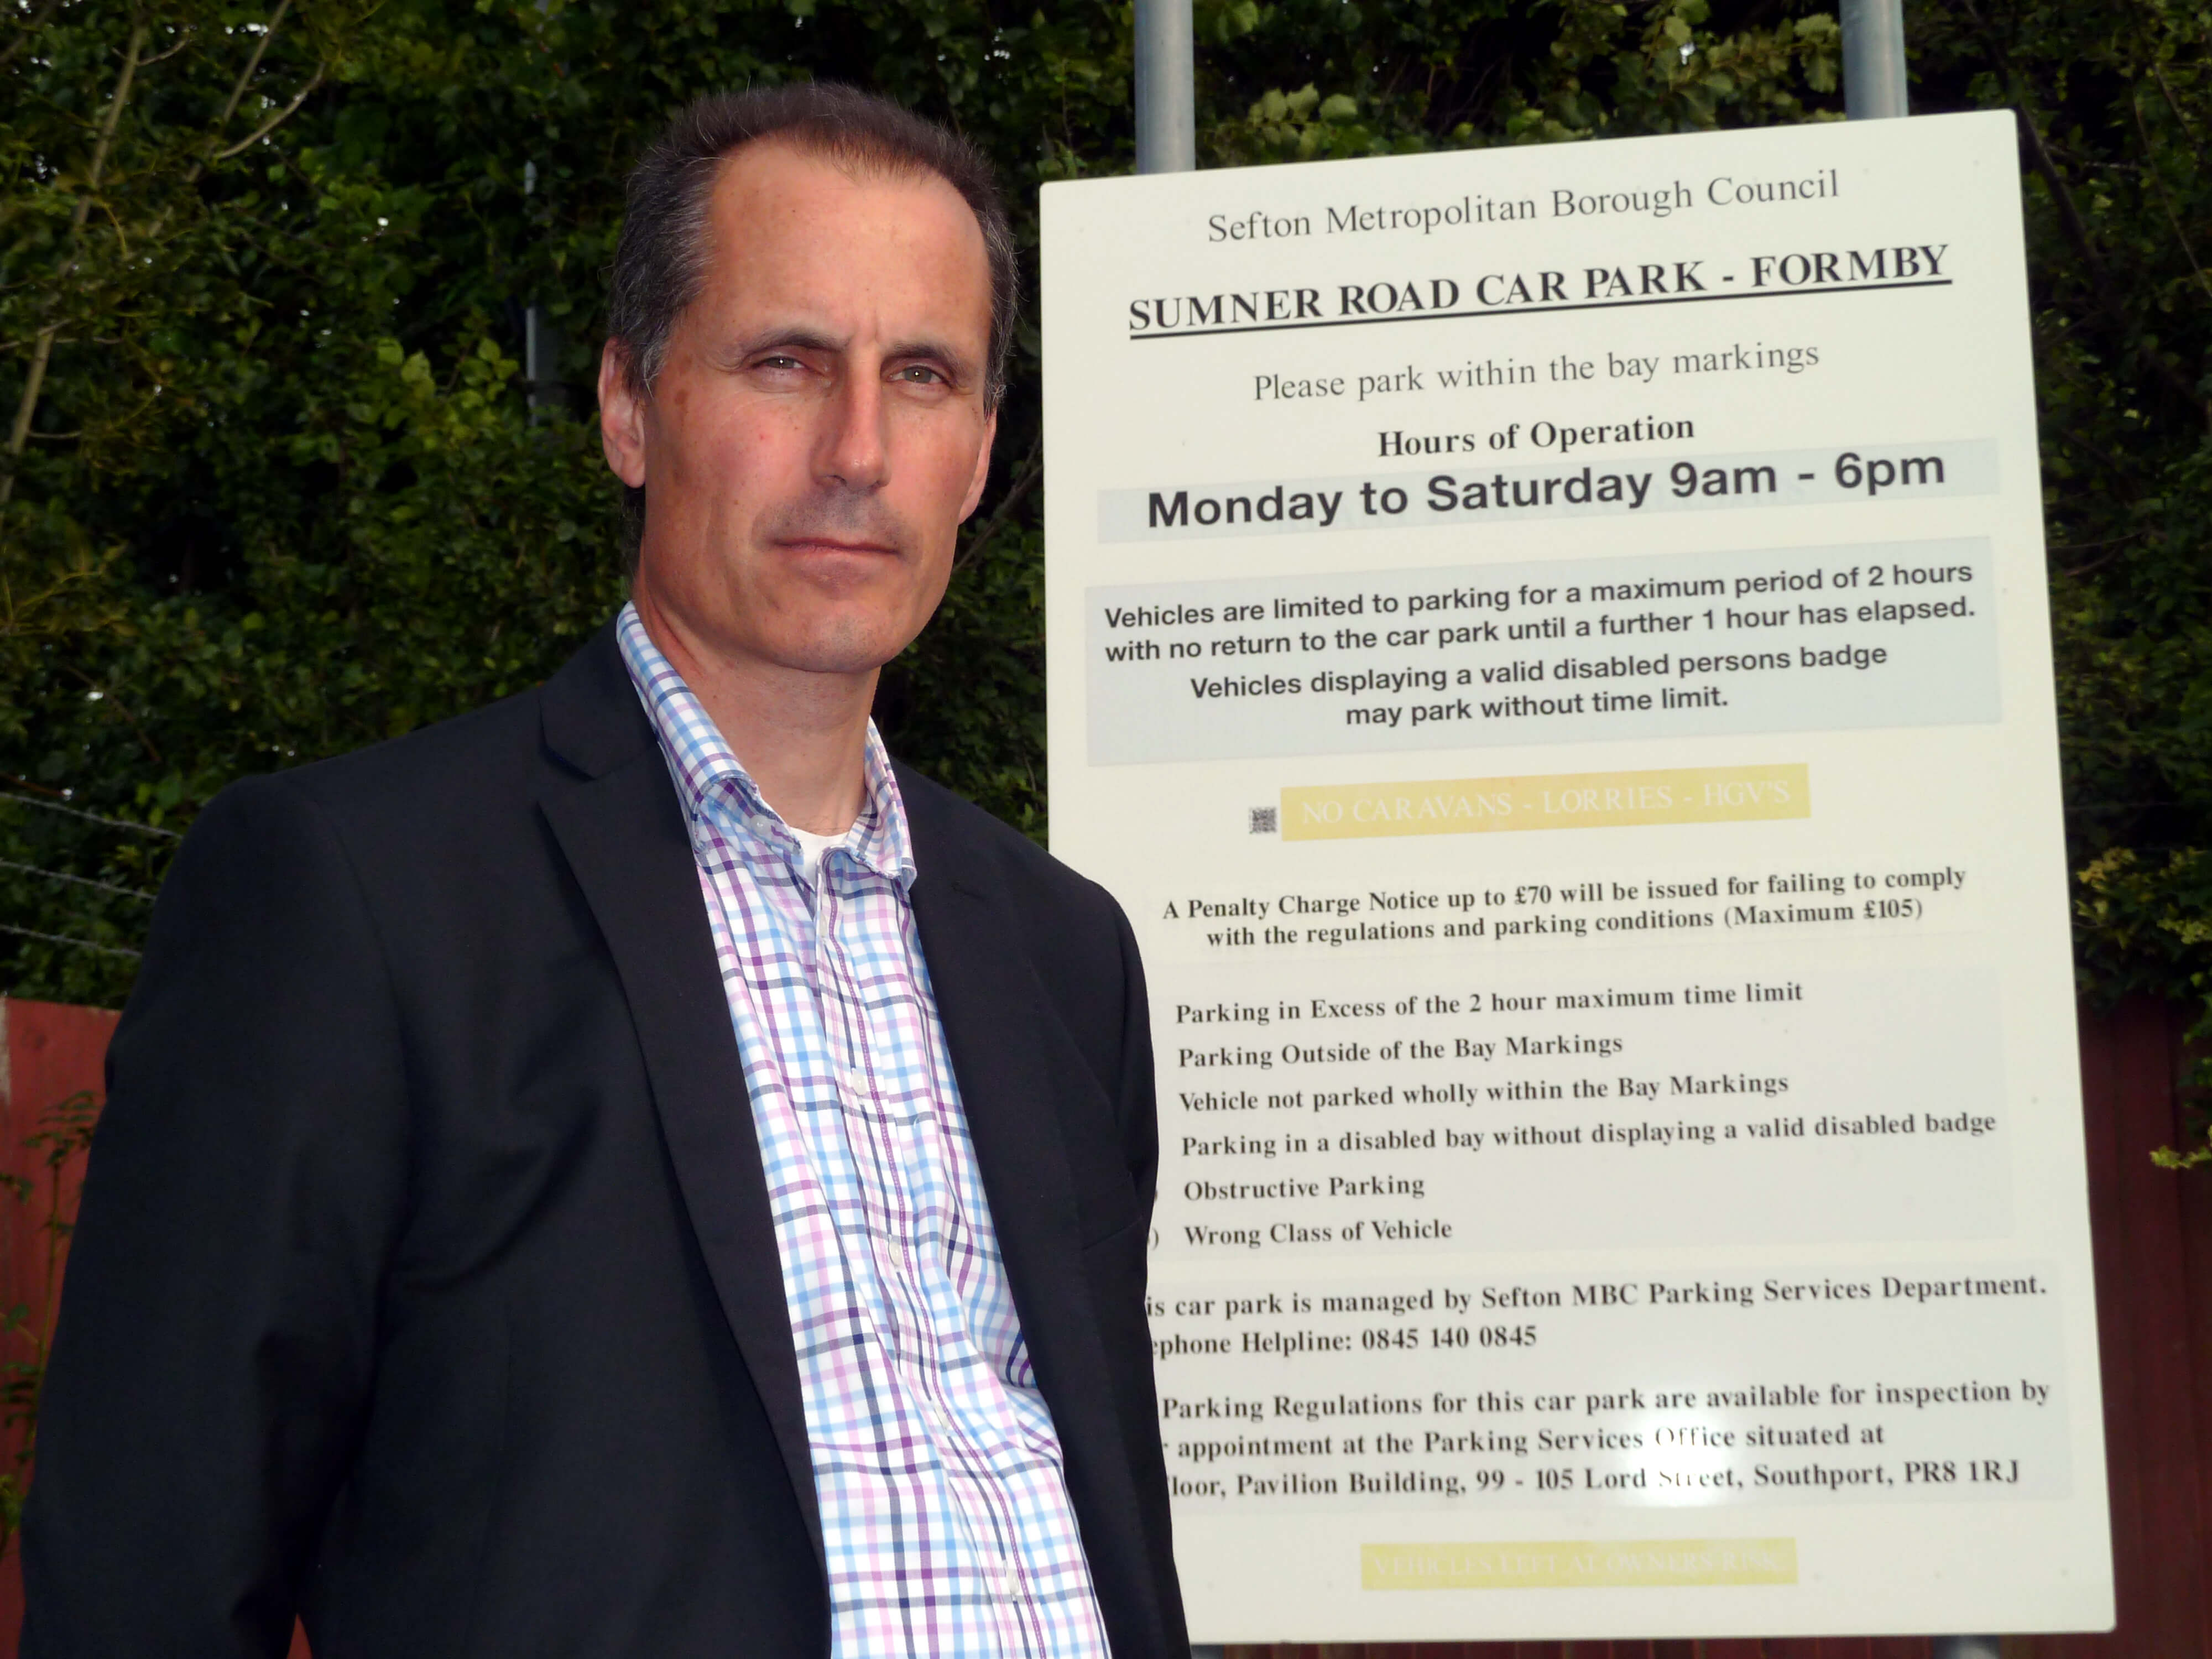 Bill Esterson is opposing plans to introduce parking charges at Sumner Road car park.